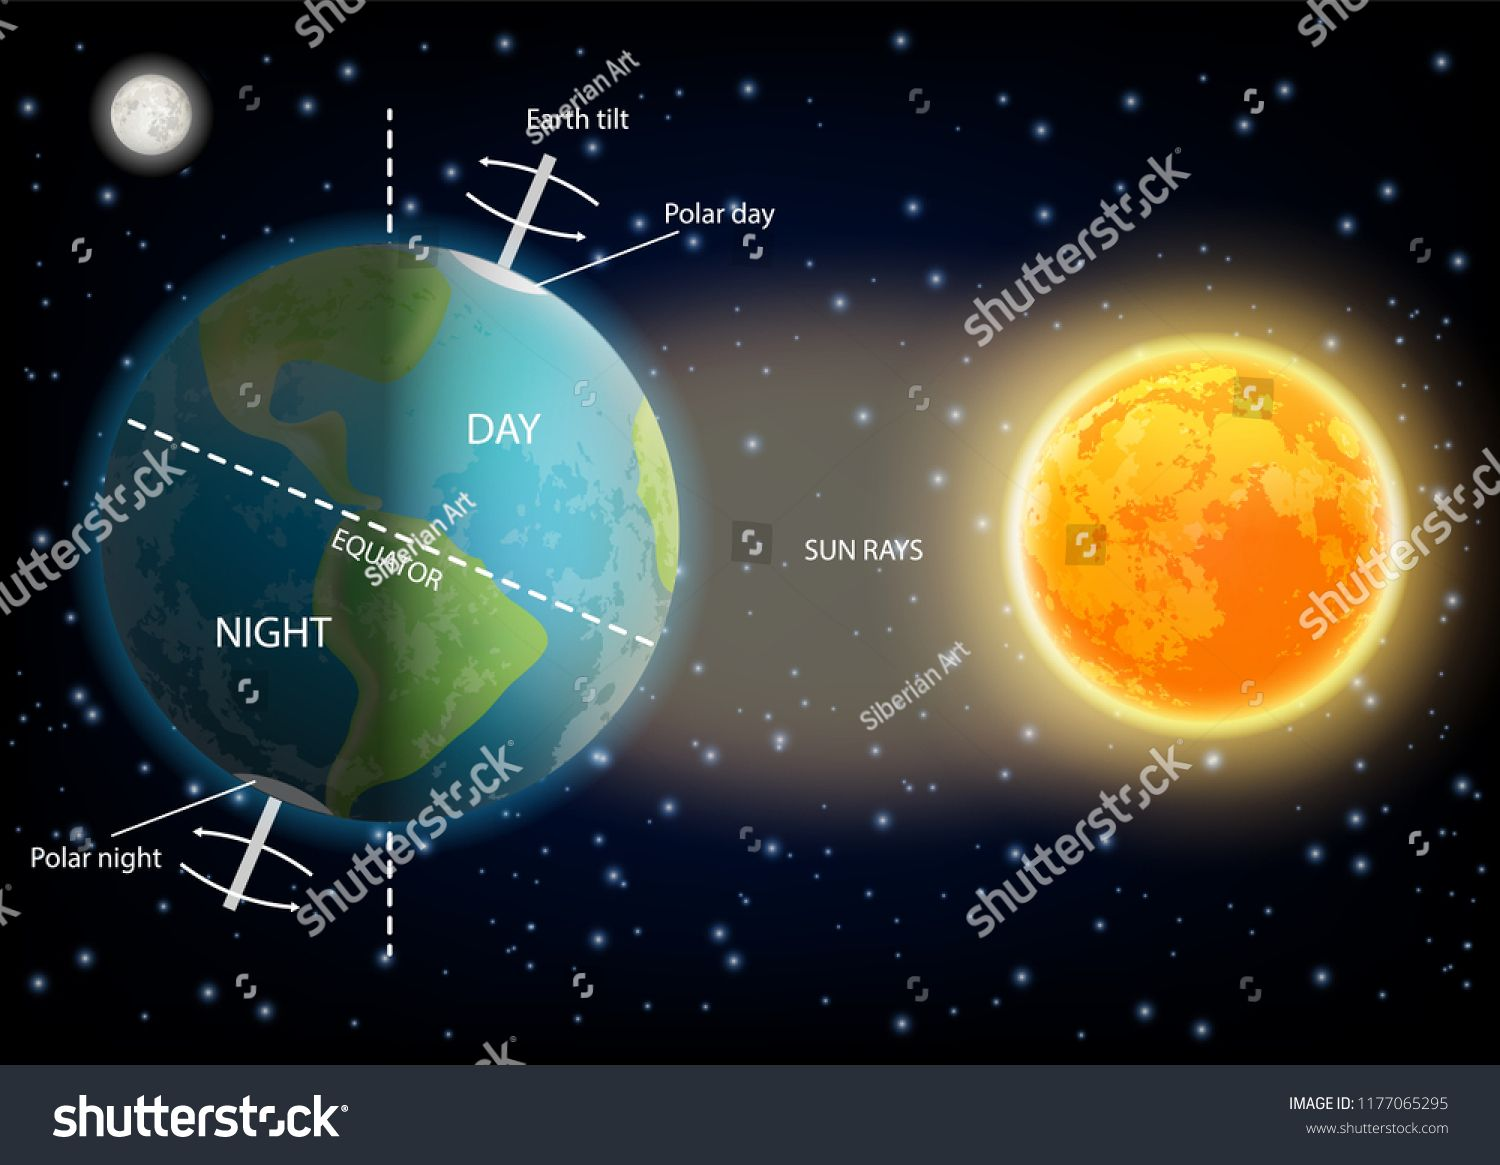 24 Hours Day And Night Cycle Diagram Vector Illustration Of Sun And Planet Earth Rotating On Its Axi In 2020 Education Poster Art Activities For Kids Sun Illustration